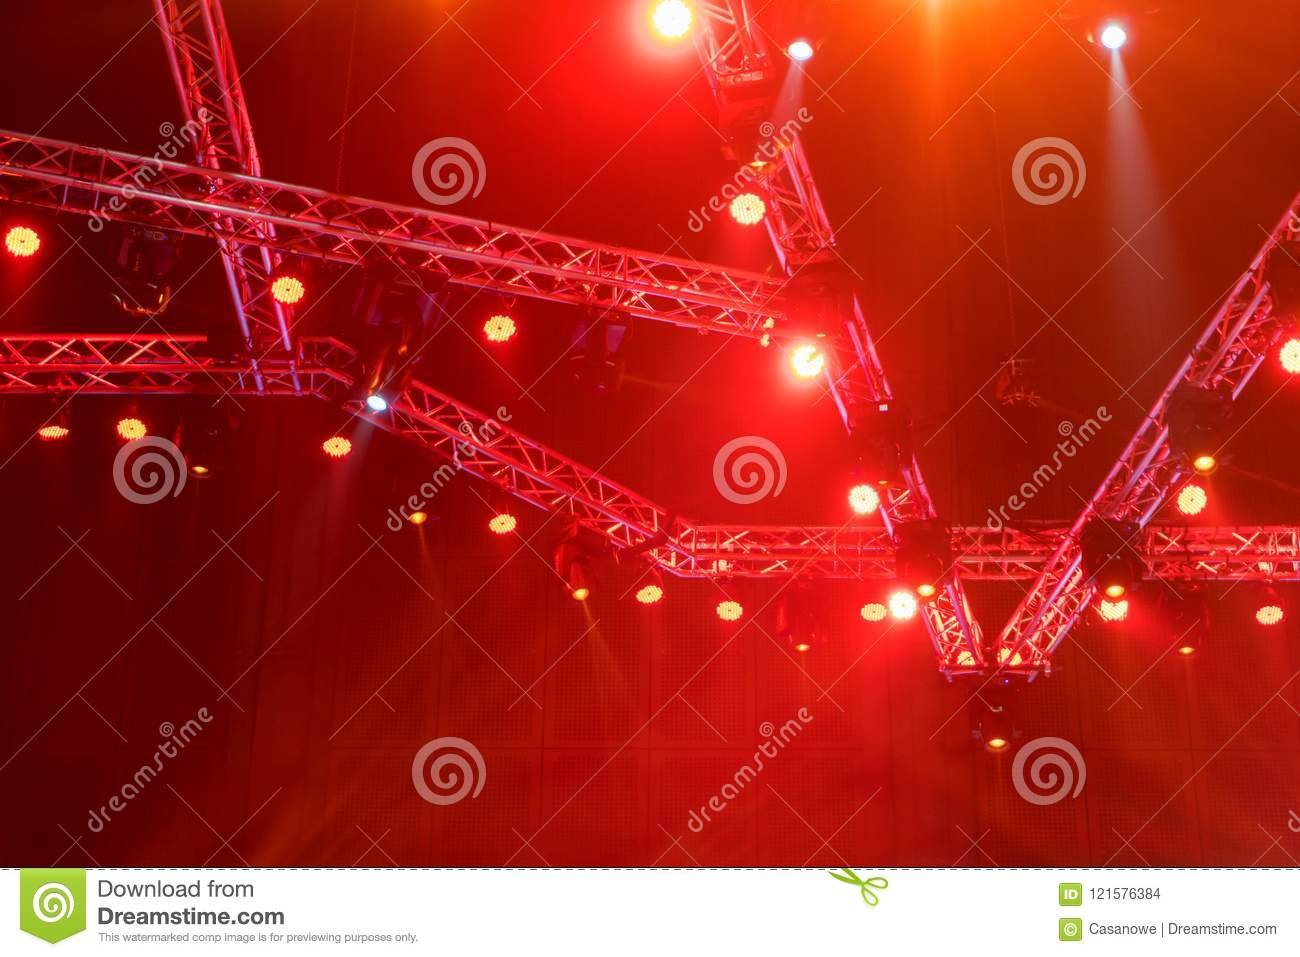 Stage lights on concert or Lighting equipment with Laser rays be